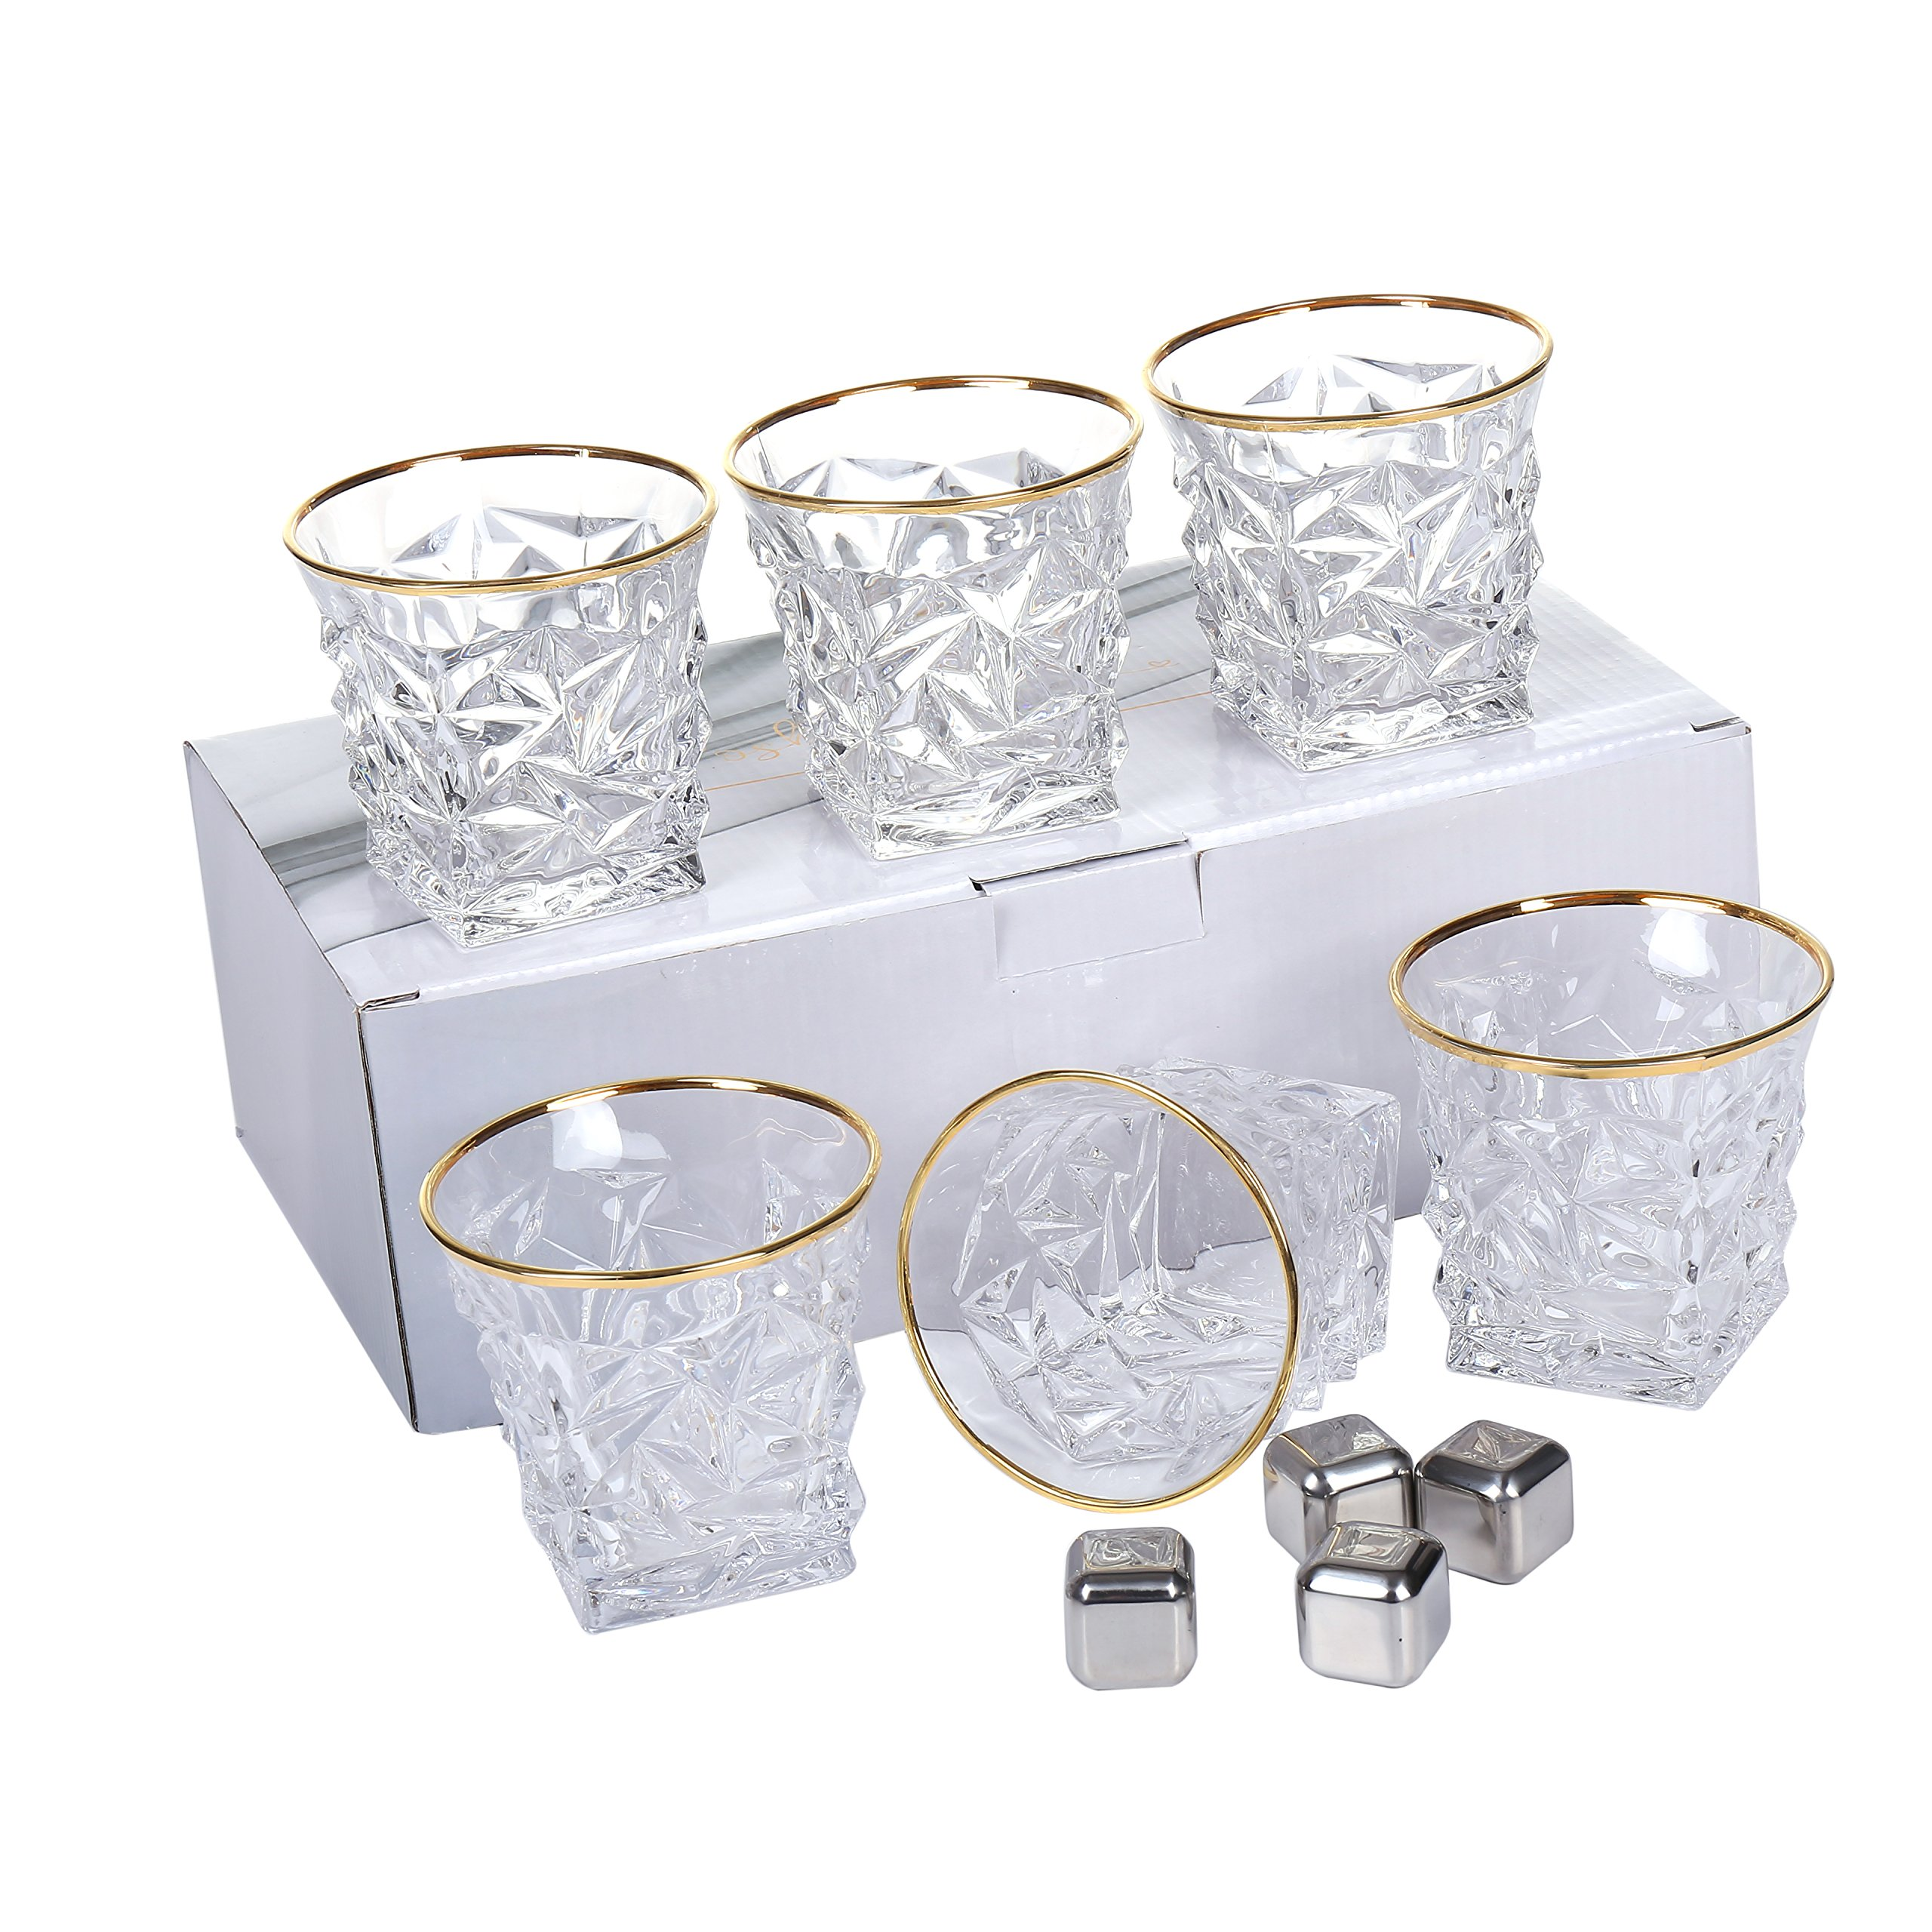 Posh Five Whiskey Glasses Set of 6 Diamond Scotch Glasses + 4 Stainless Steel Whiskey Stones by Posh Five Trading Co (Image #8)